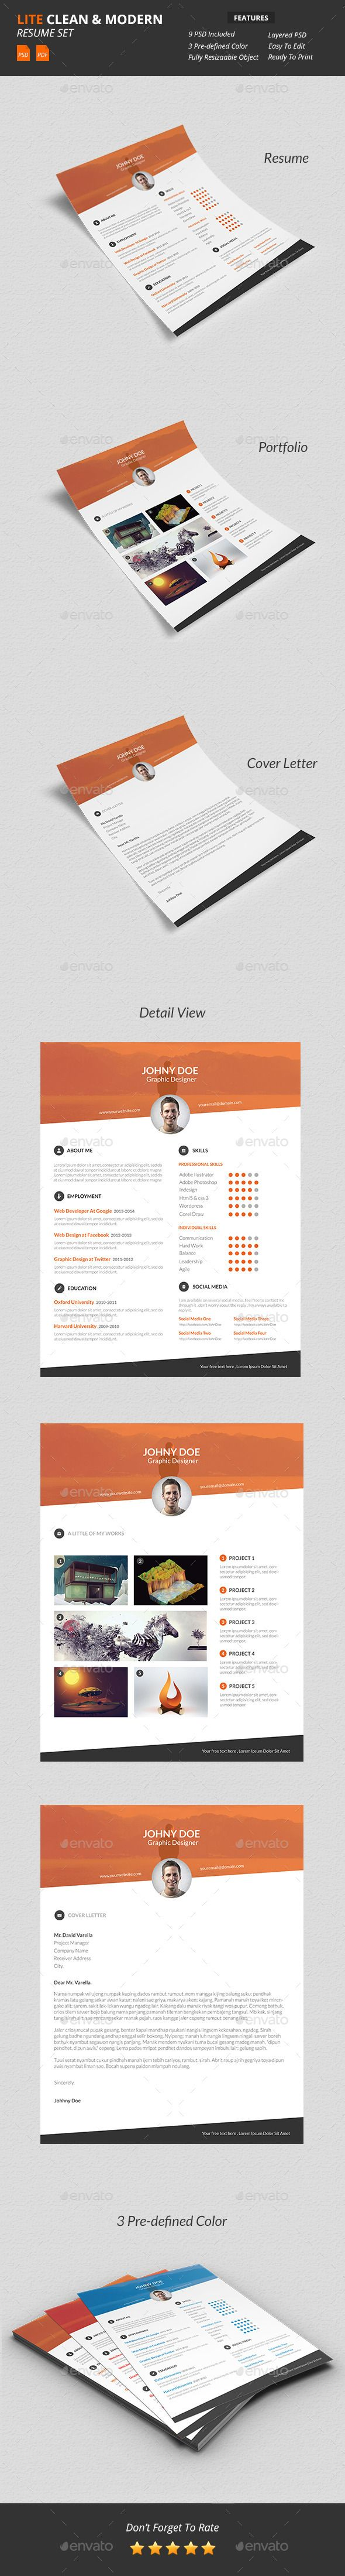 Lite - Clean & Modern Resume Template